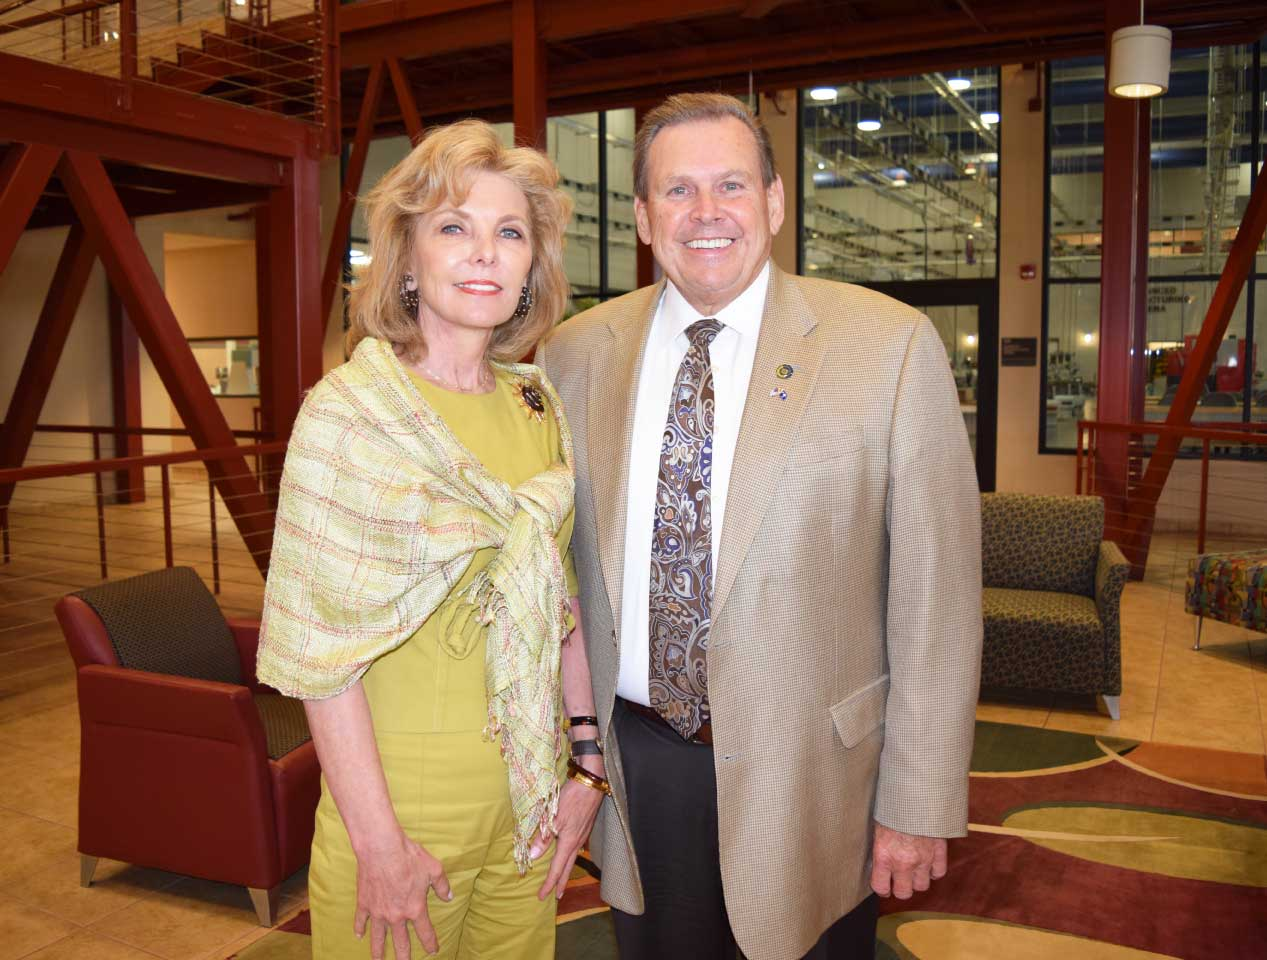 Darla Moore and Dr Dillard